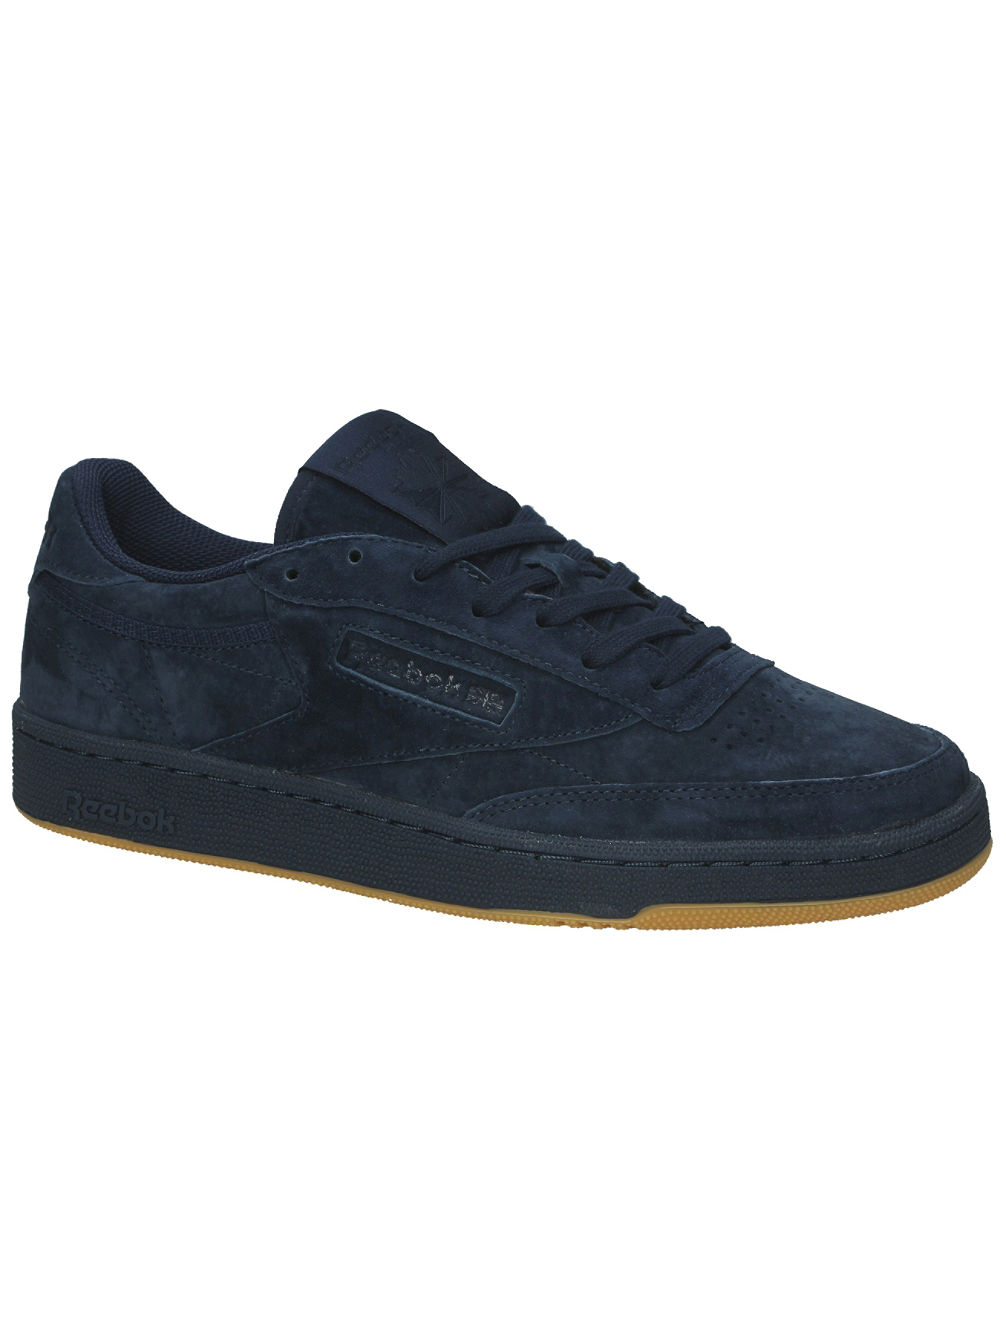 65ff23be960c Buy Reebok Club C 85 TG Sneakers online at blue-tomato.com